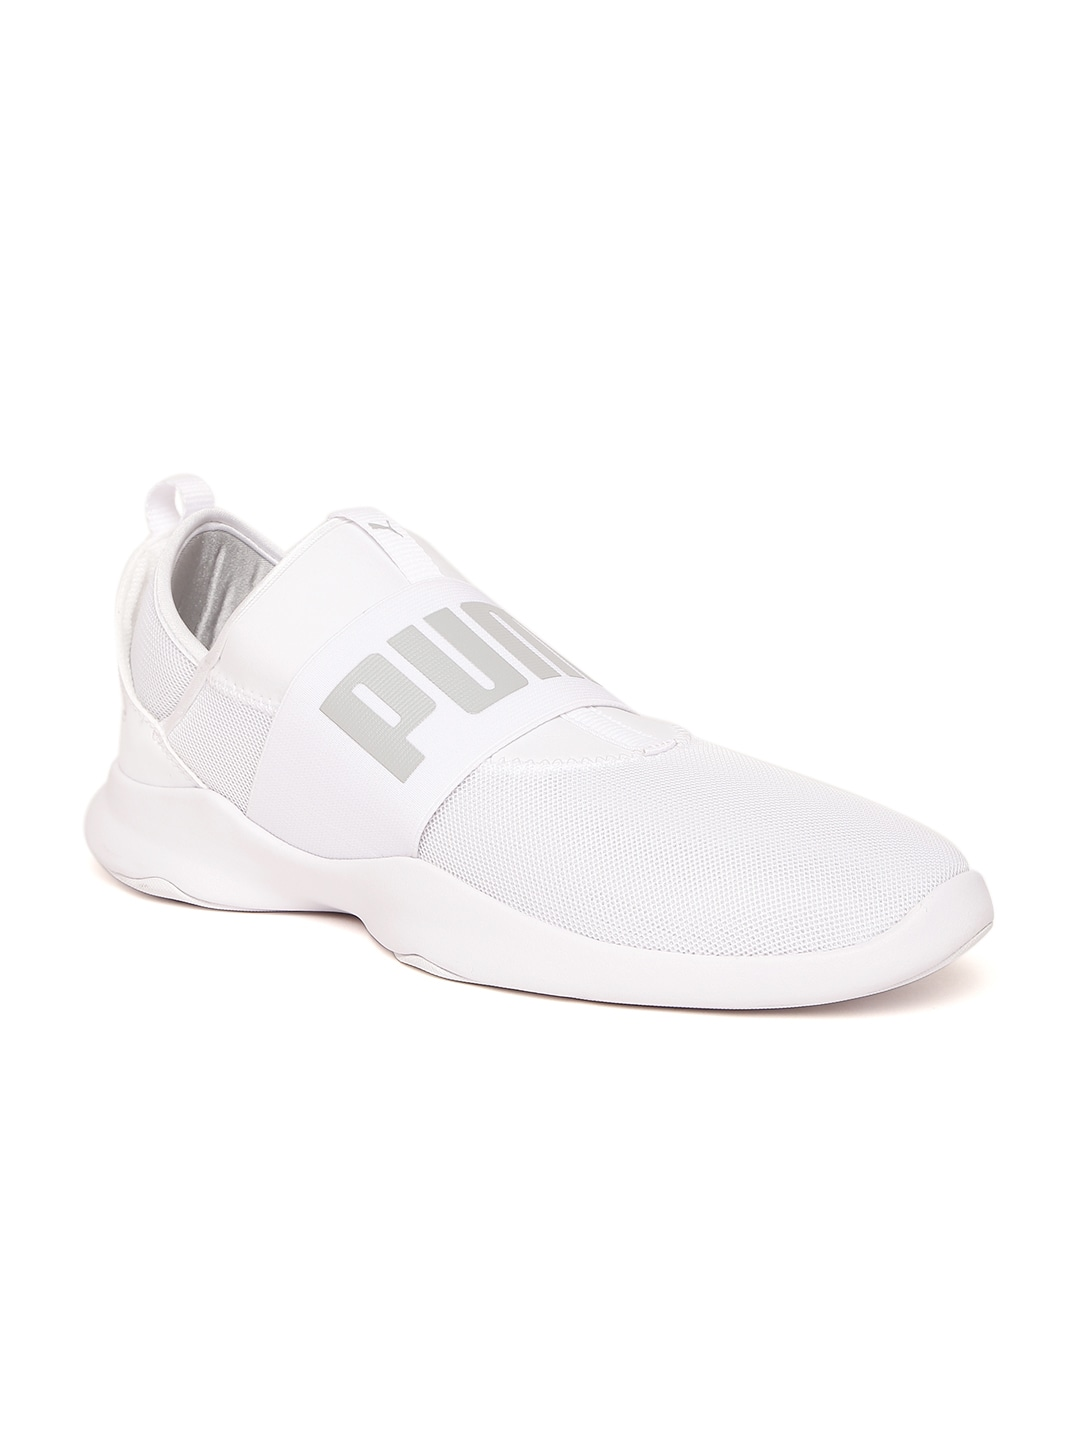 3b381cf487b4 Puma Slip On Shoes - Buy Puma Slip On Shoes online in India